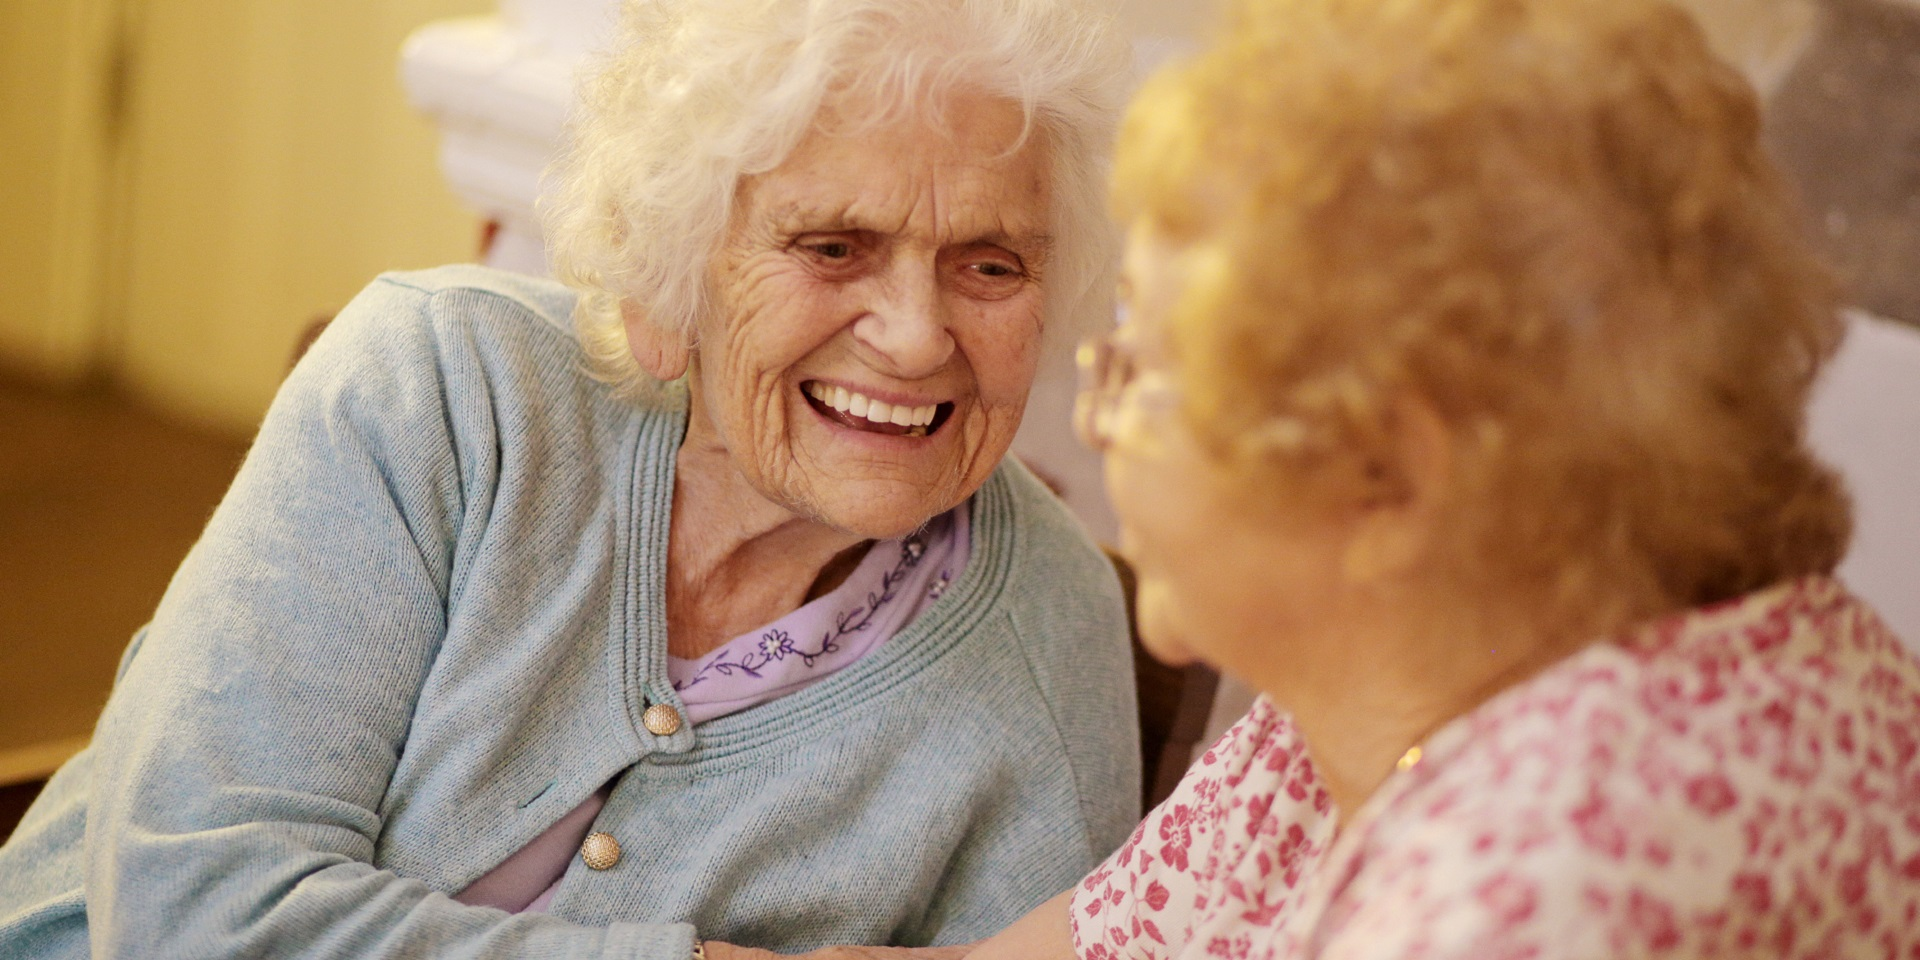 Tickford Abbey encourages companionship between residents